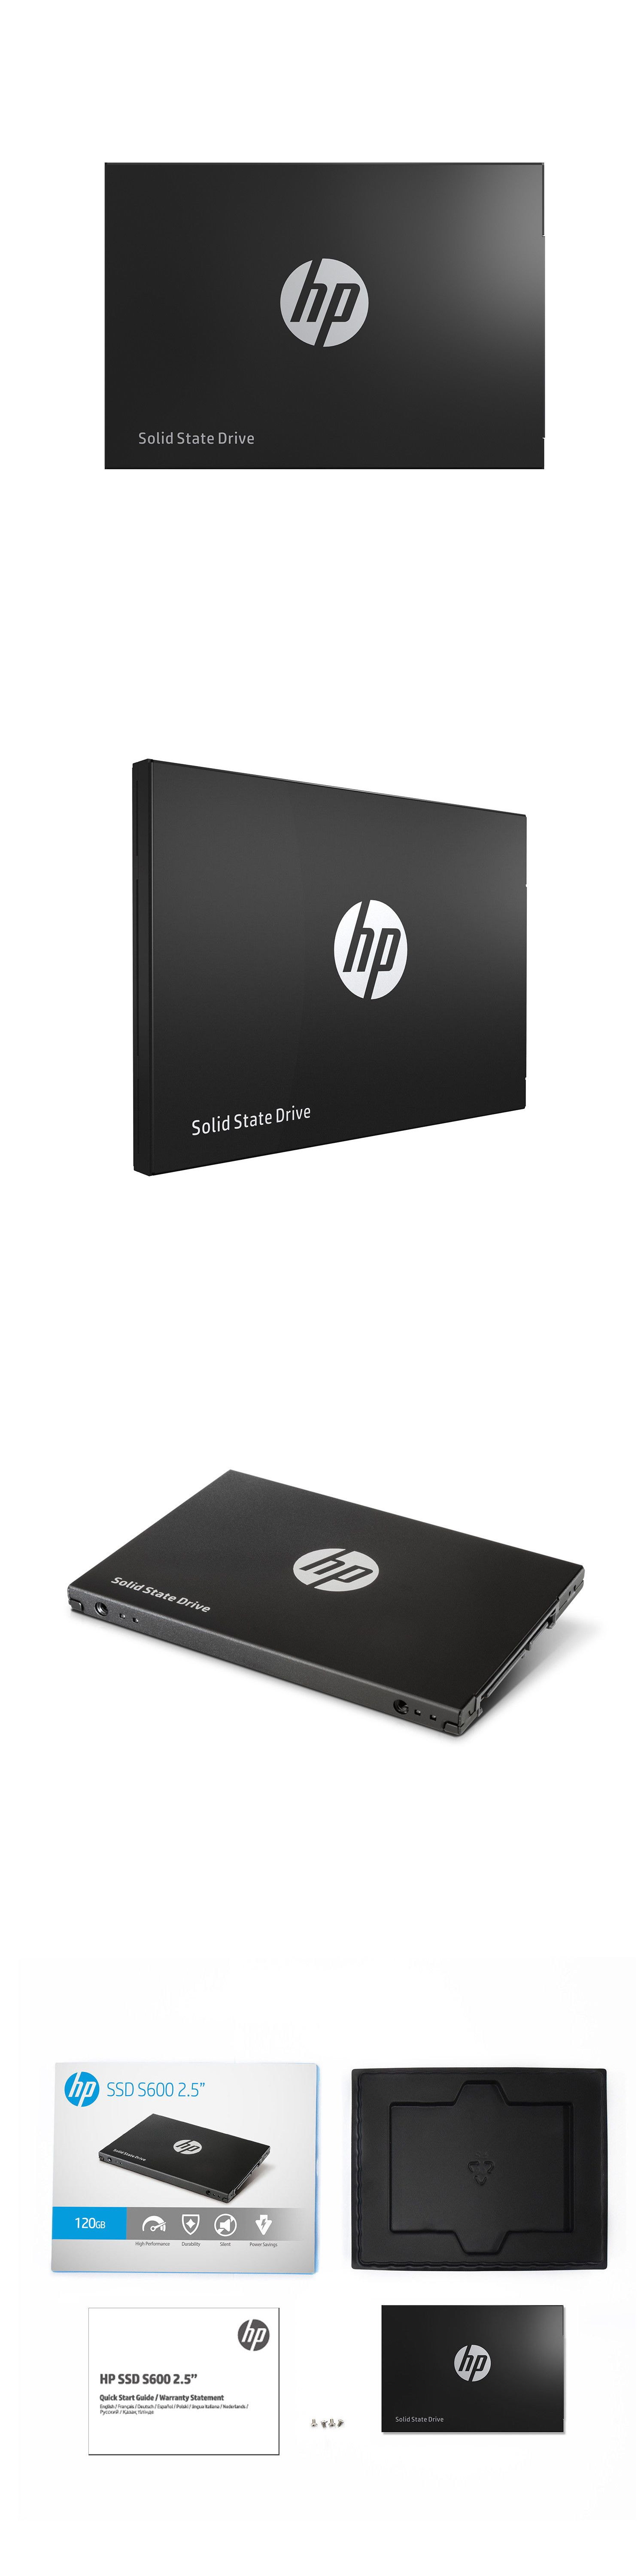 Solid State Drives 175669: Hp S600 Ssd 120Gb Sata Iii 3D Nand 2 5